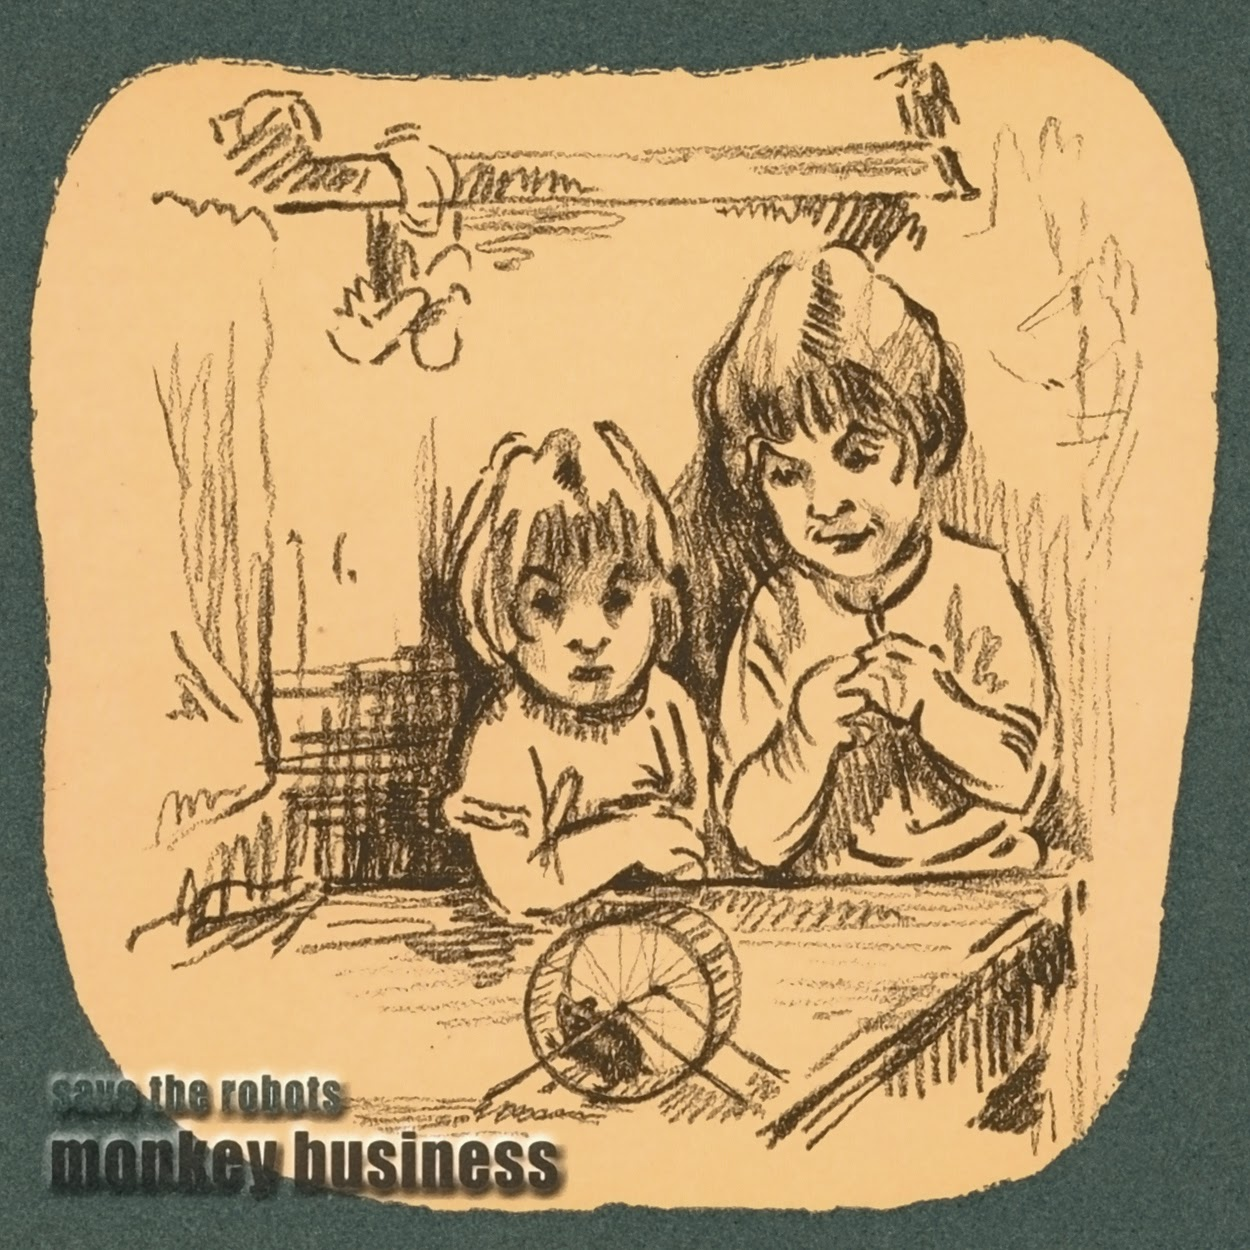 Album Artist: Monkey Business / Album Title: Save the Robots